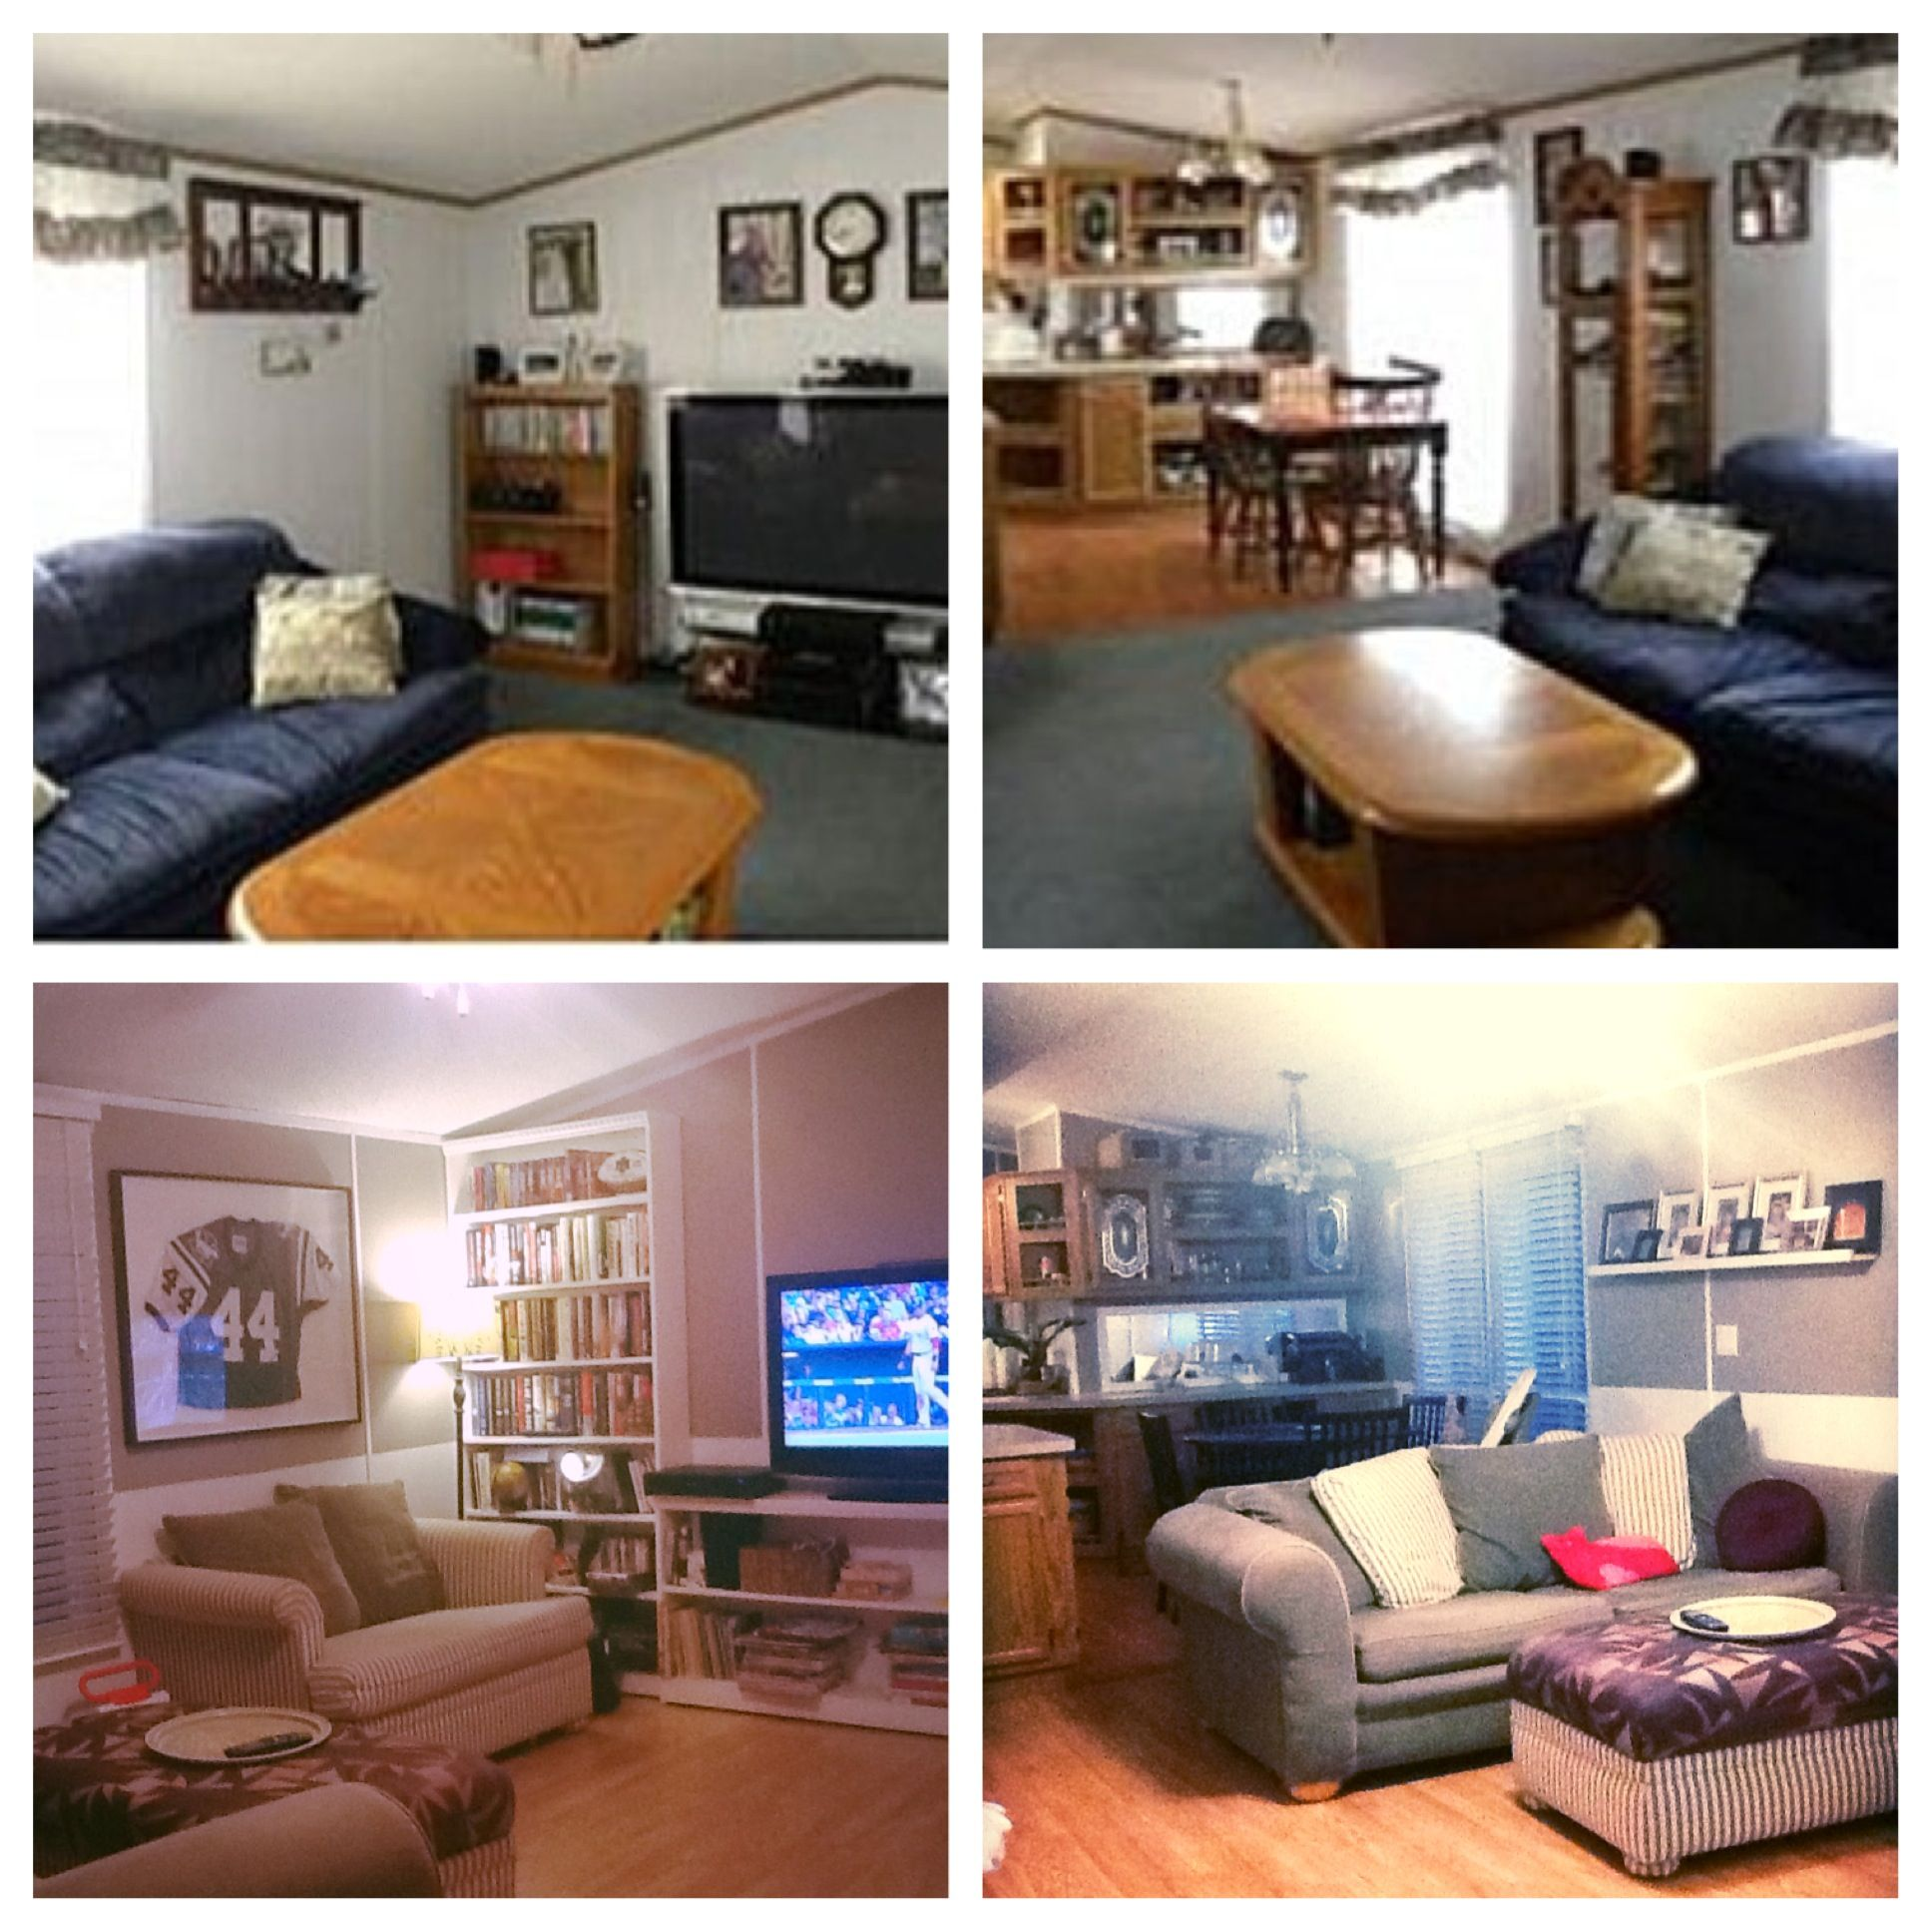 Mobile Home Interior Decorating: Before And After Makeover Pictures Of Our Single Wide